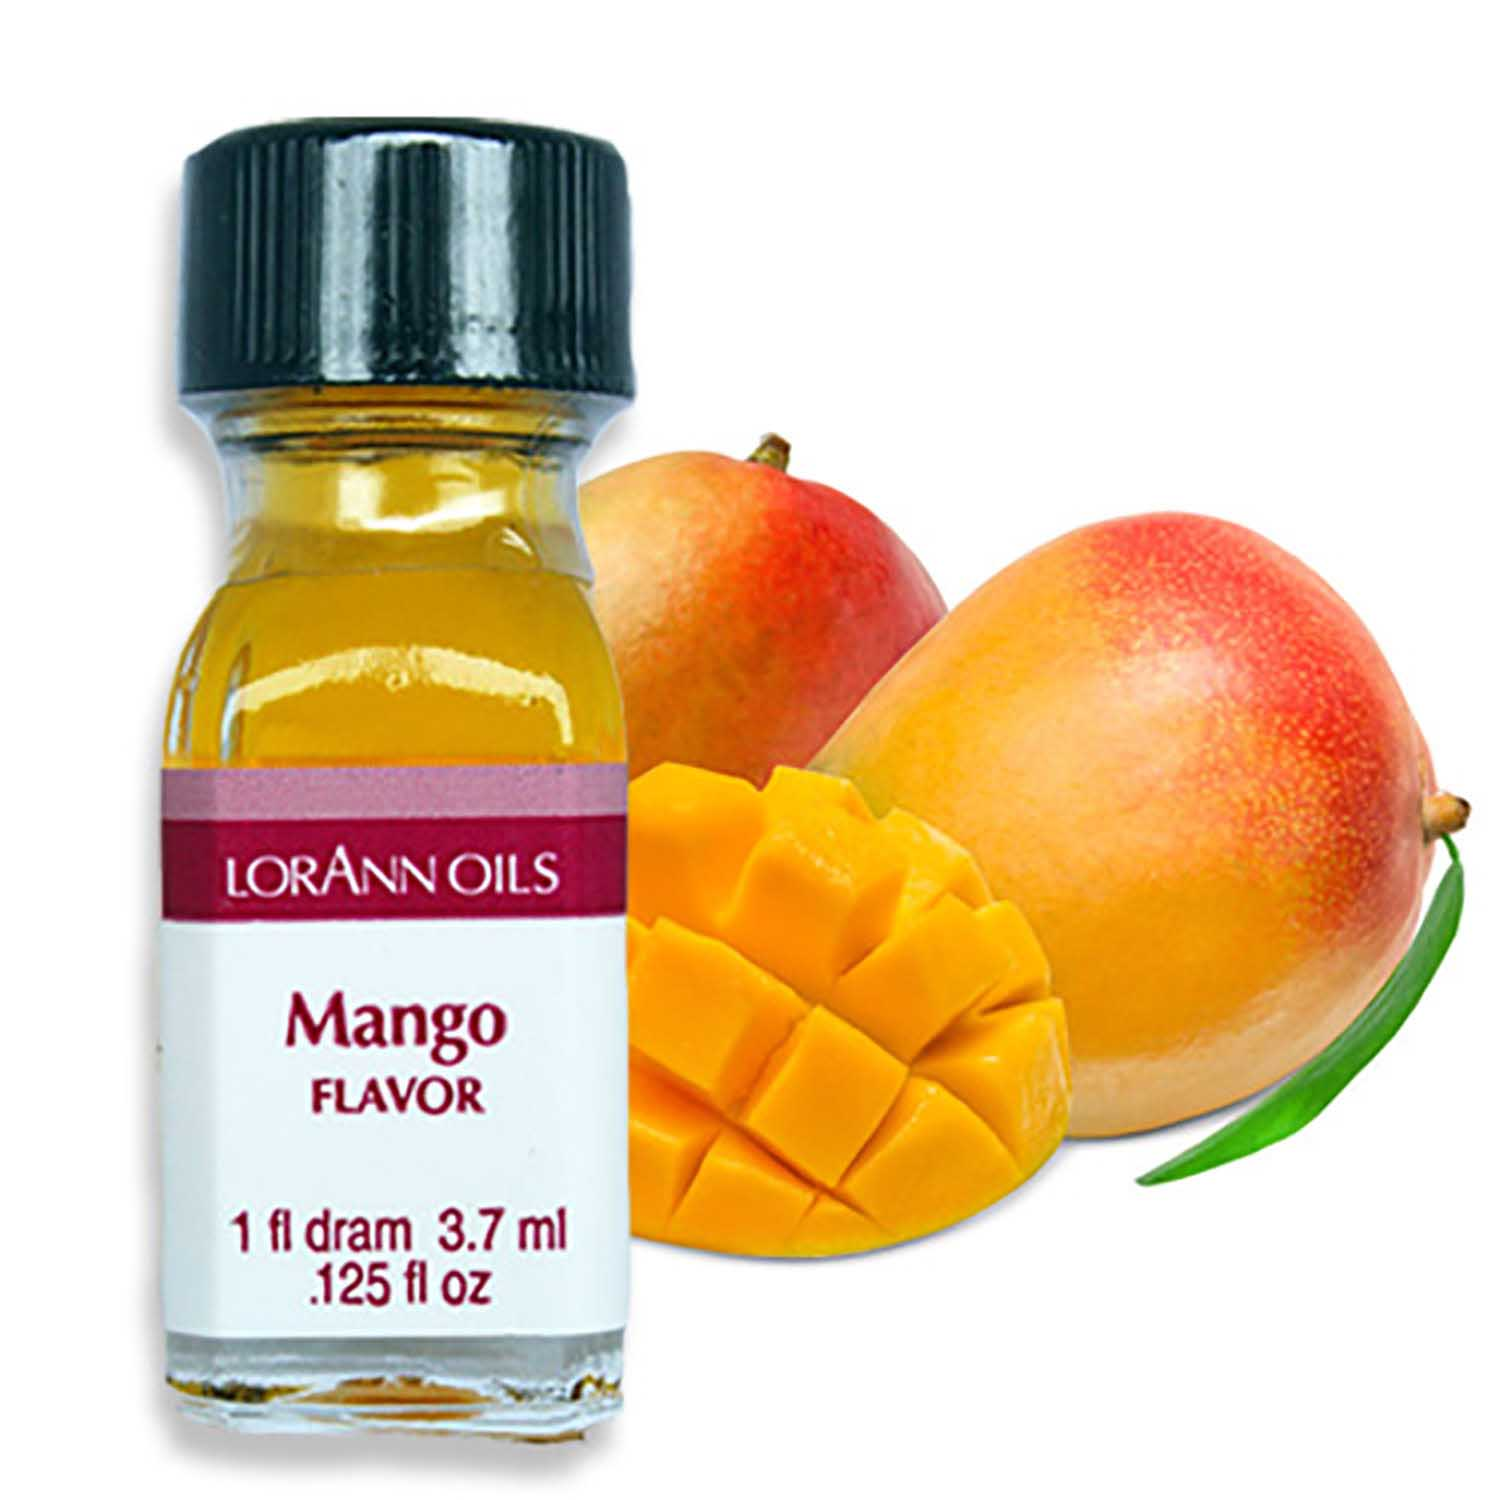 Mango Super-Strength Flavor